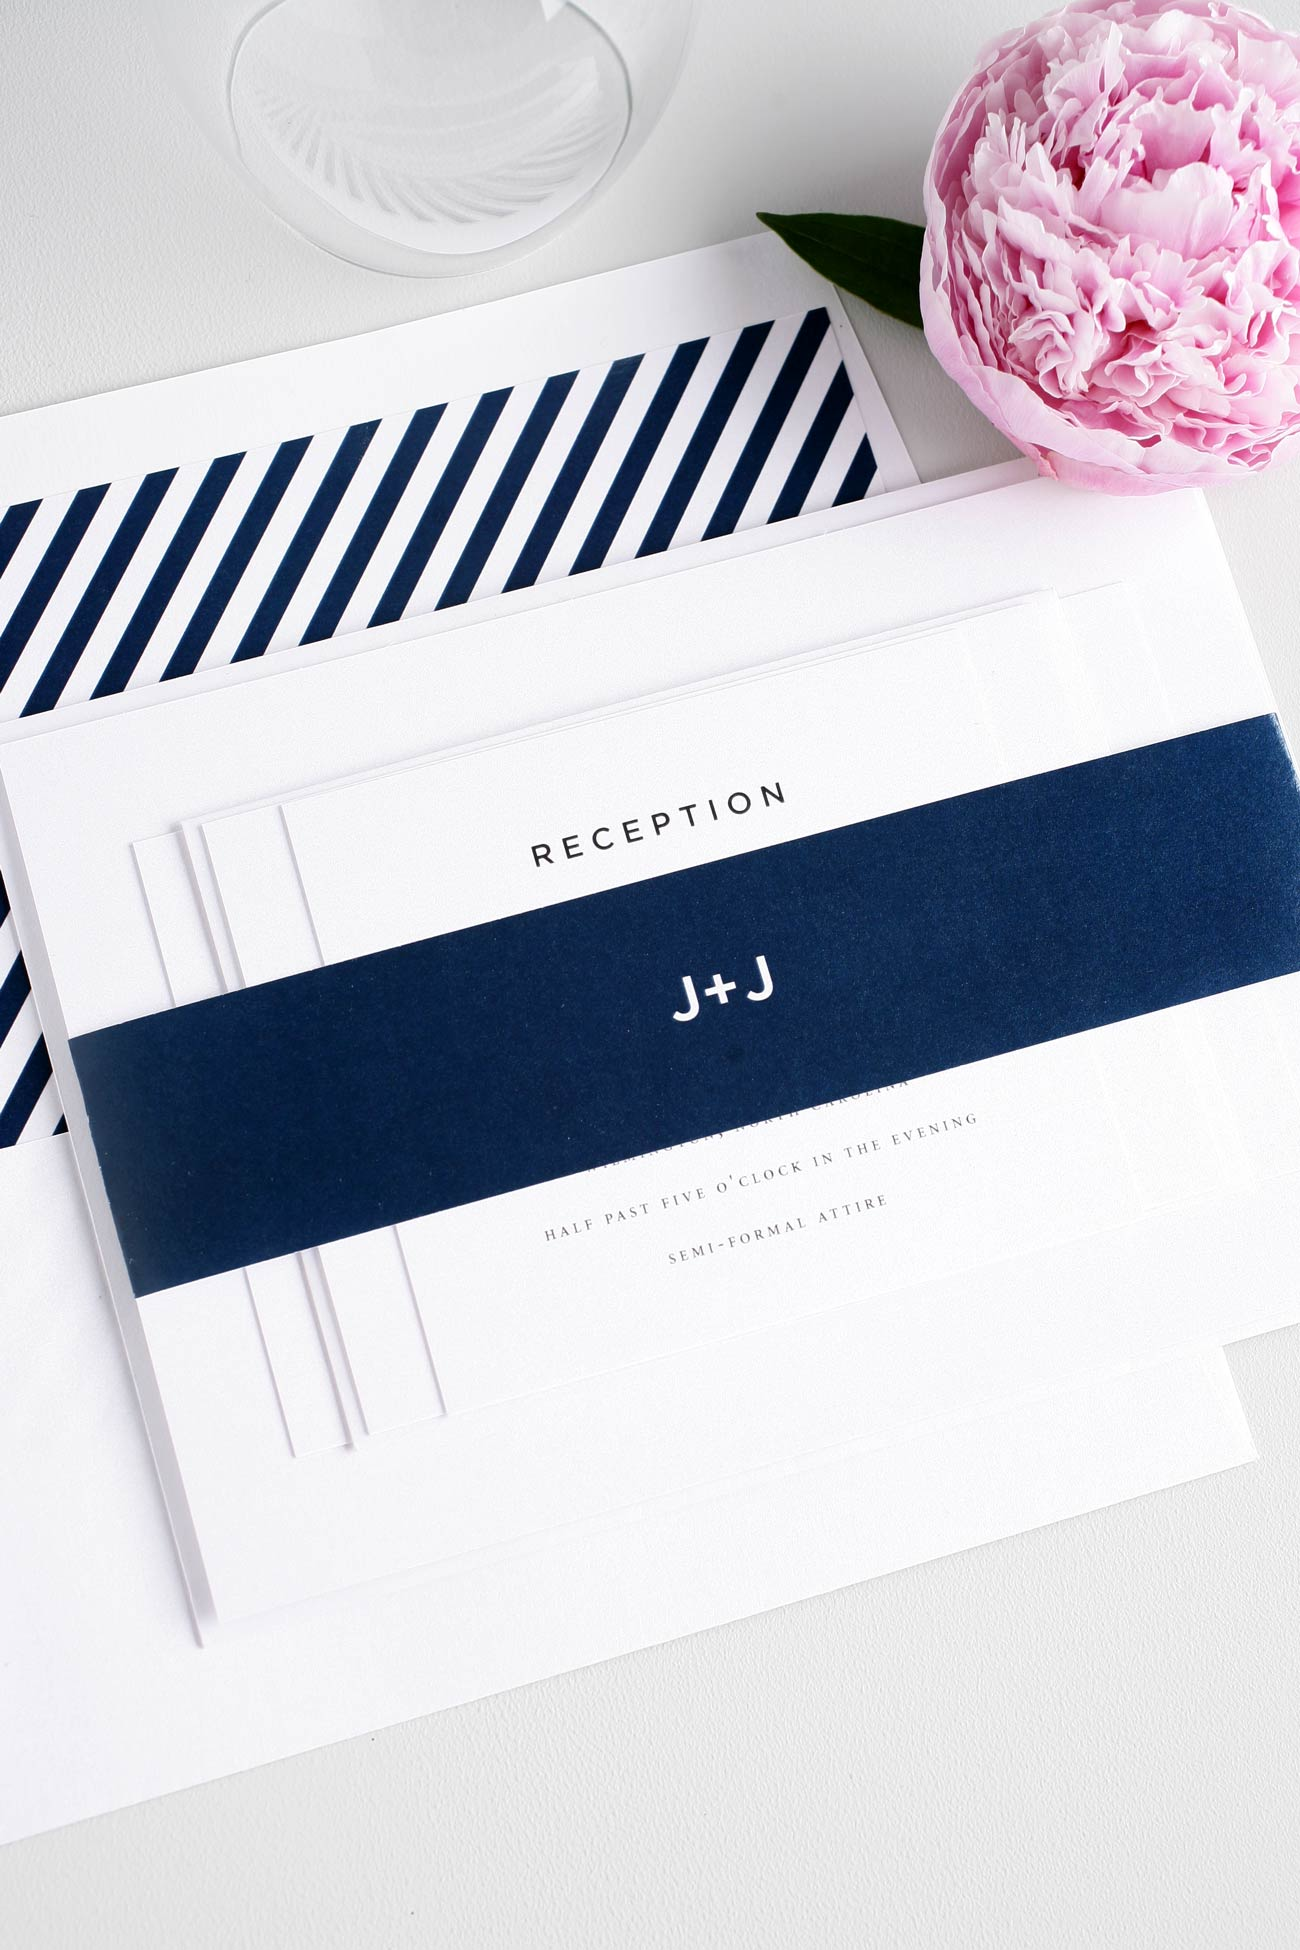 Urban navy wedding invitations with stripes